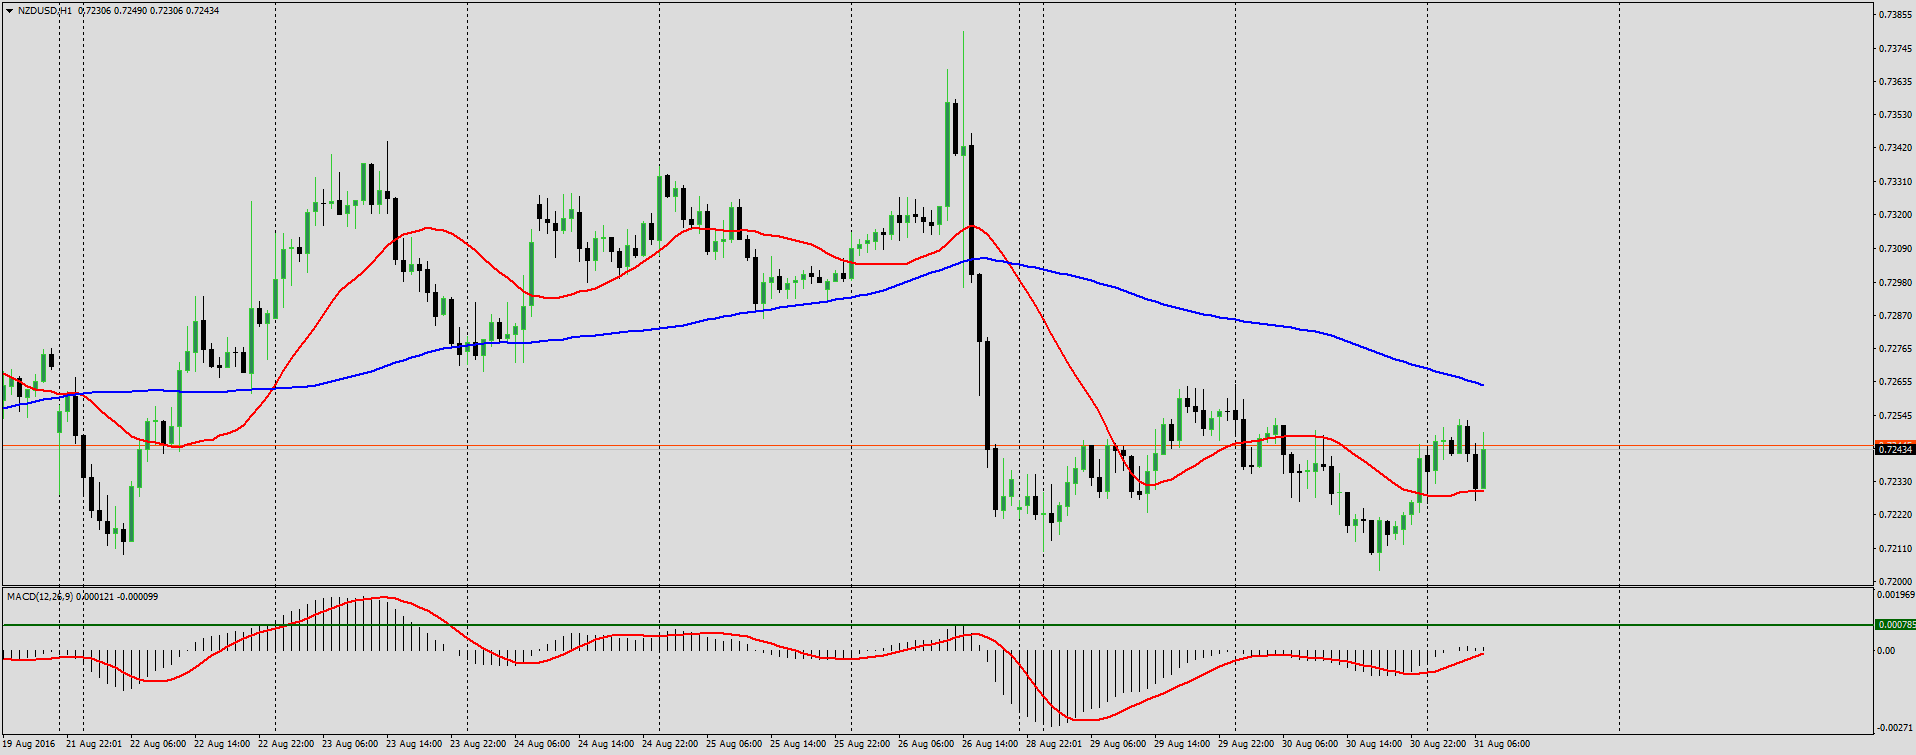 2 MA trading strategy Forex analysis August 31